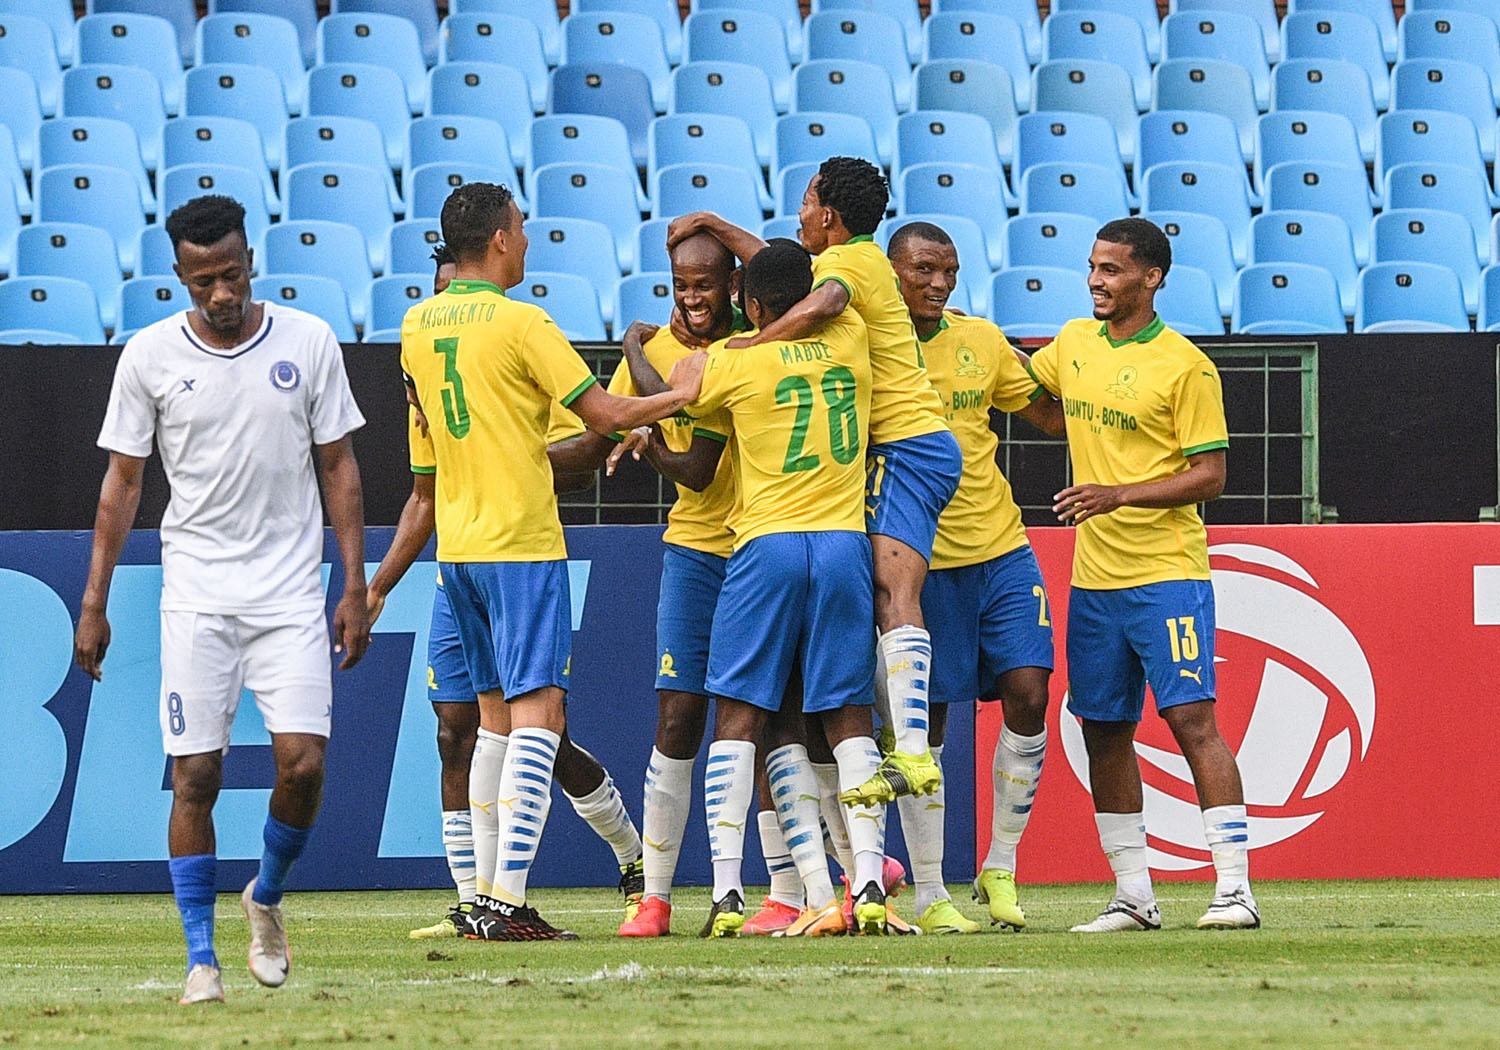 Masandawana kick off Group Stages with 2-0 Home Win